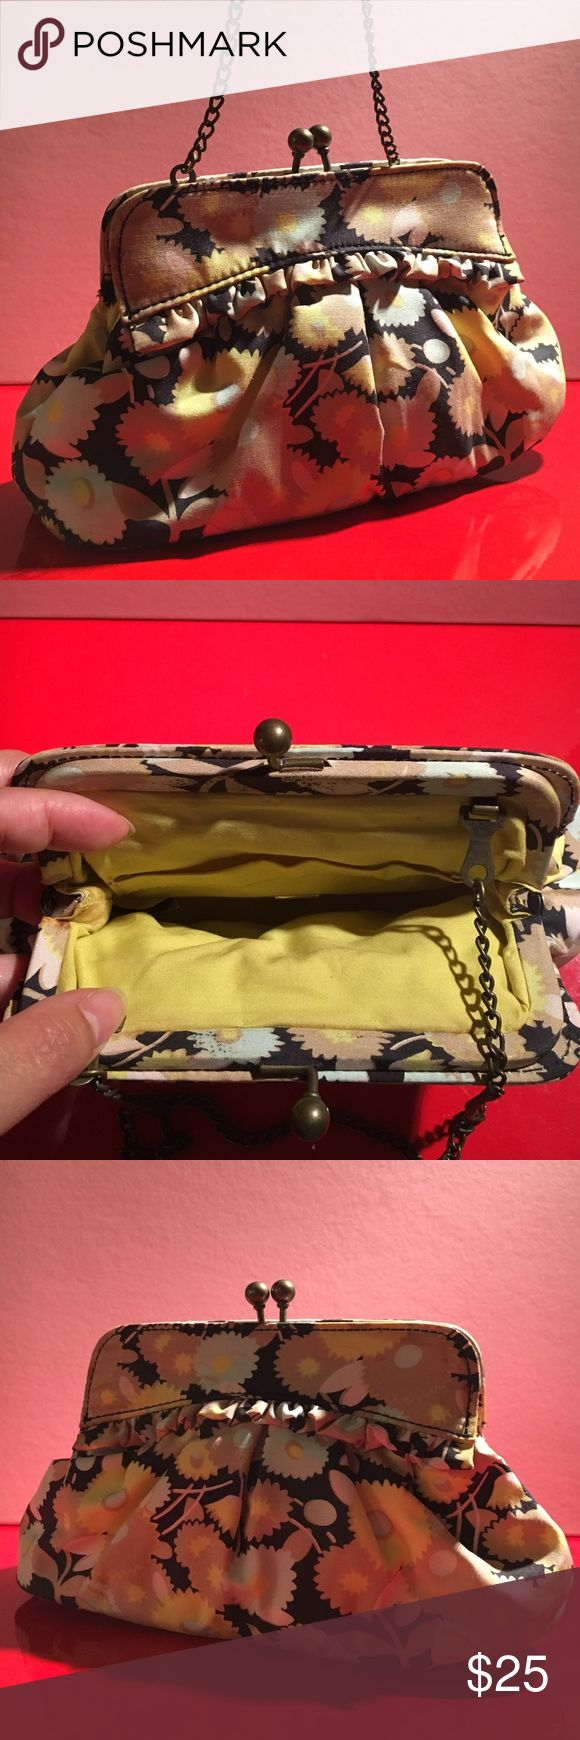 GAP clutch/mini purse Cute subtle ruffles in neutrals and pastels this purse can be used as a clutch or purse. Has a granny snap closure with buttercup yellow interiors and a pocket! Made of silk with cotton lining. The metal chain can be hidden inside or used- it's about 8' long. *probably over a decade old 😎 make me an offer 😎 GAP Bags Mini Bags